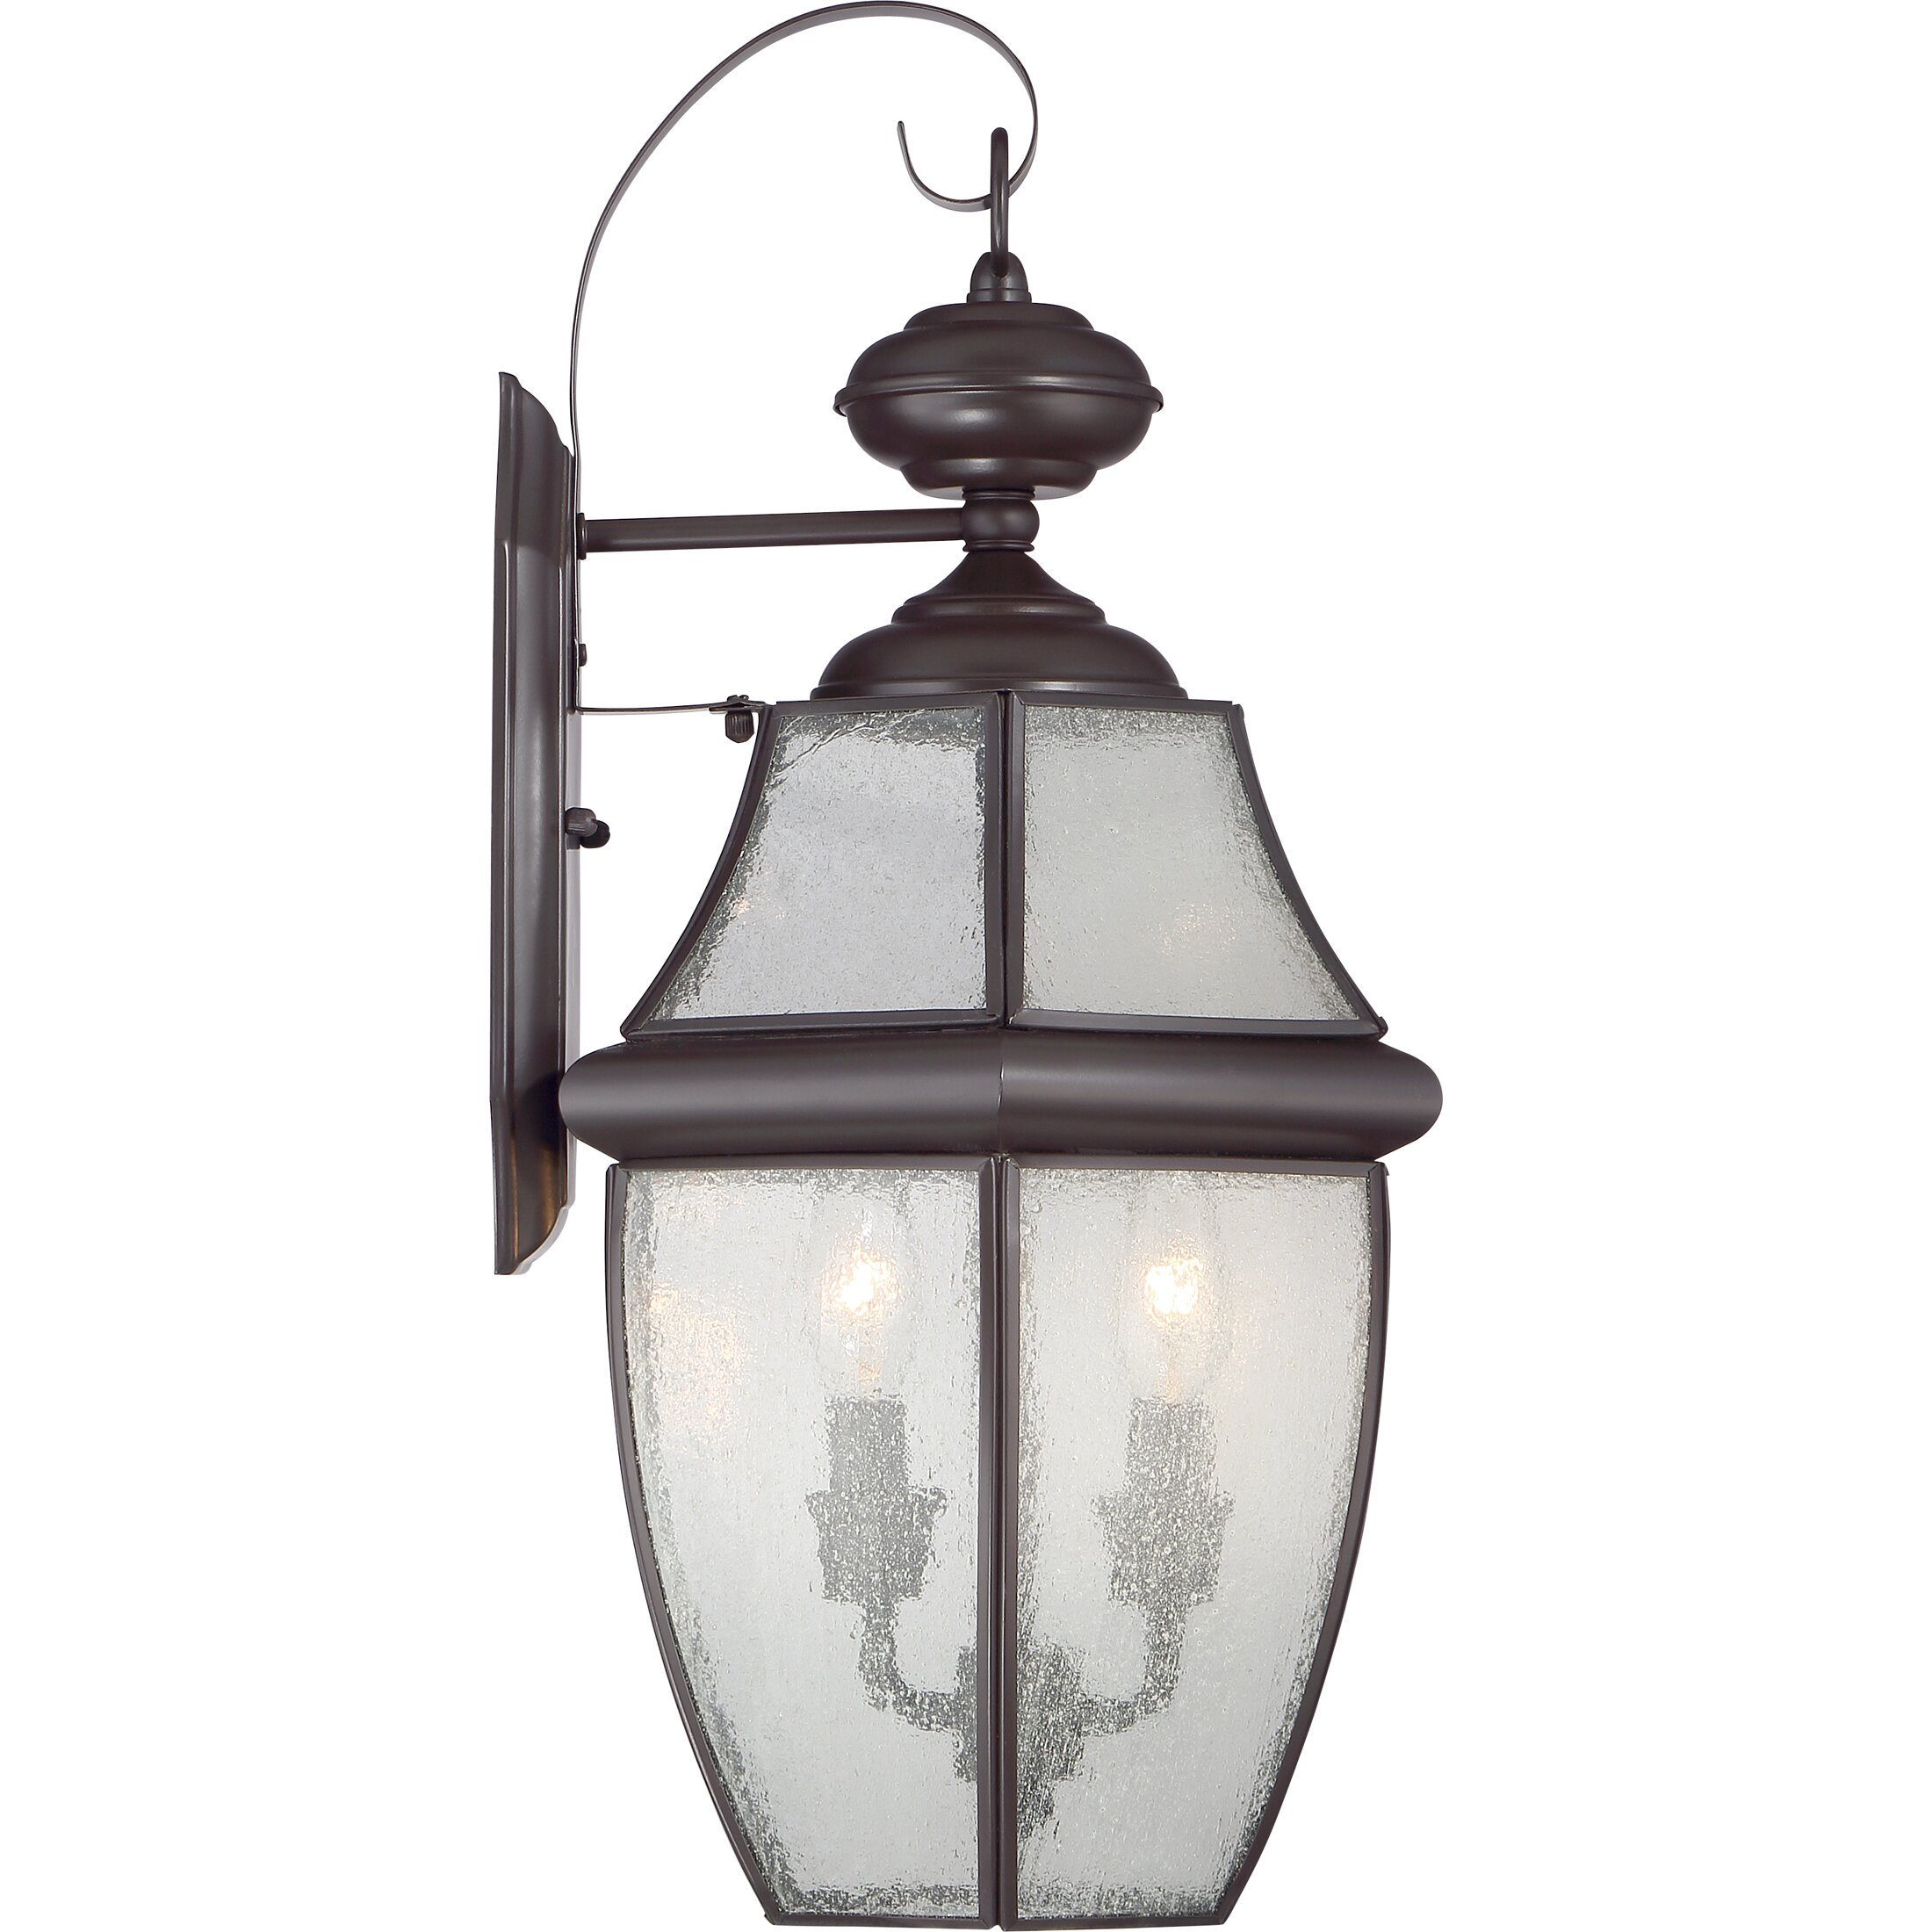 Wall Lantern Replacement Glass : Darby Home Co Saddler 2 Light Outdoor Wall Lantern & Reviews Wayfair